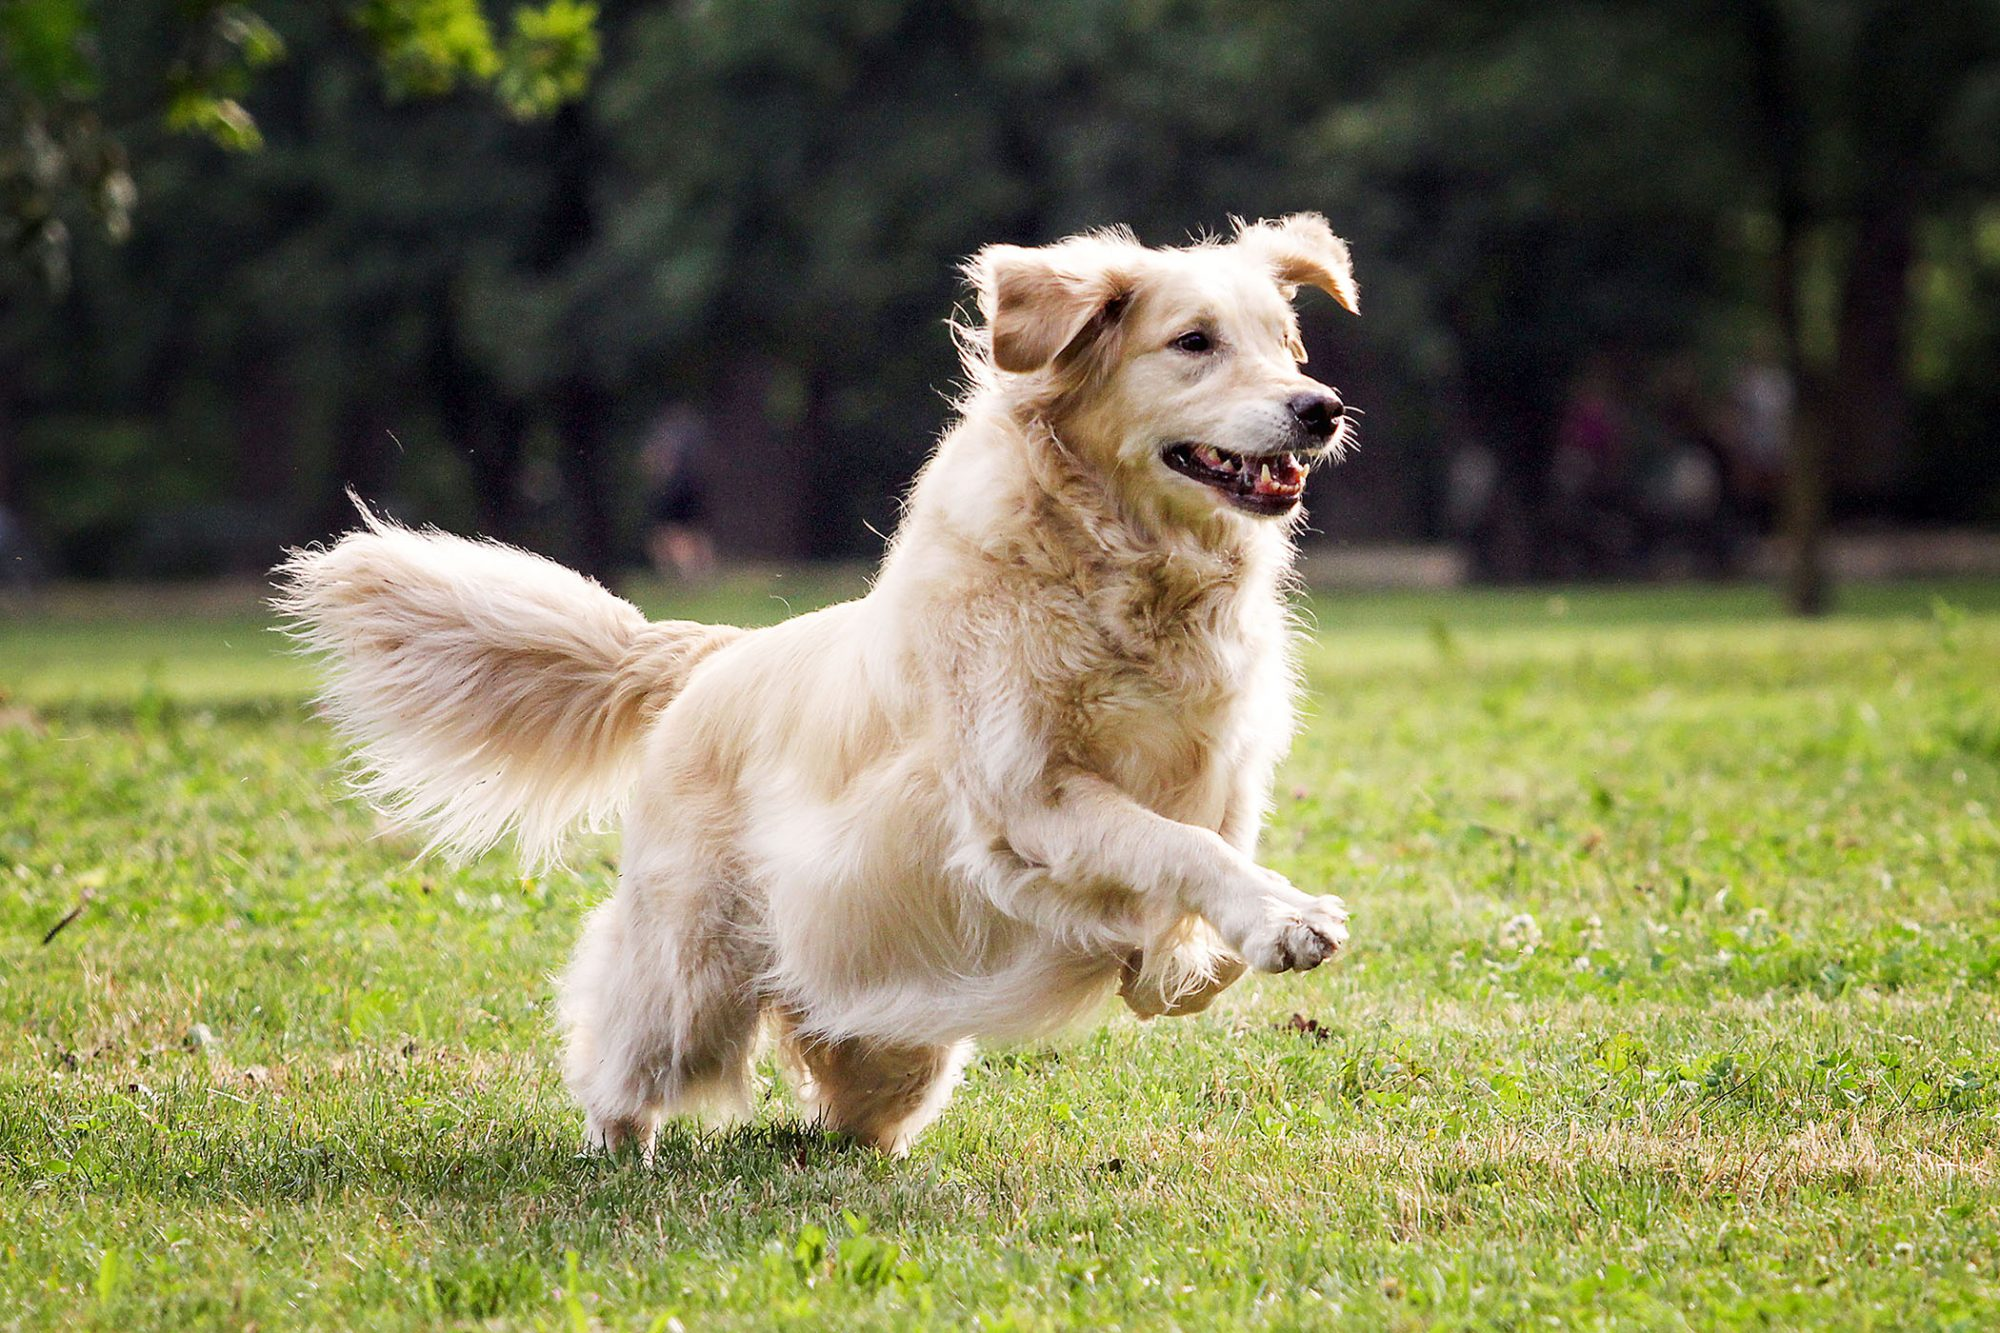 golden retriever running on grassy field